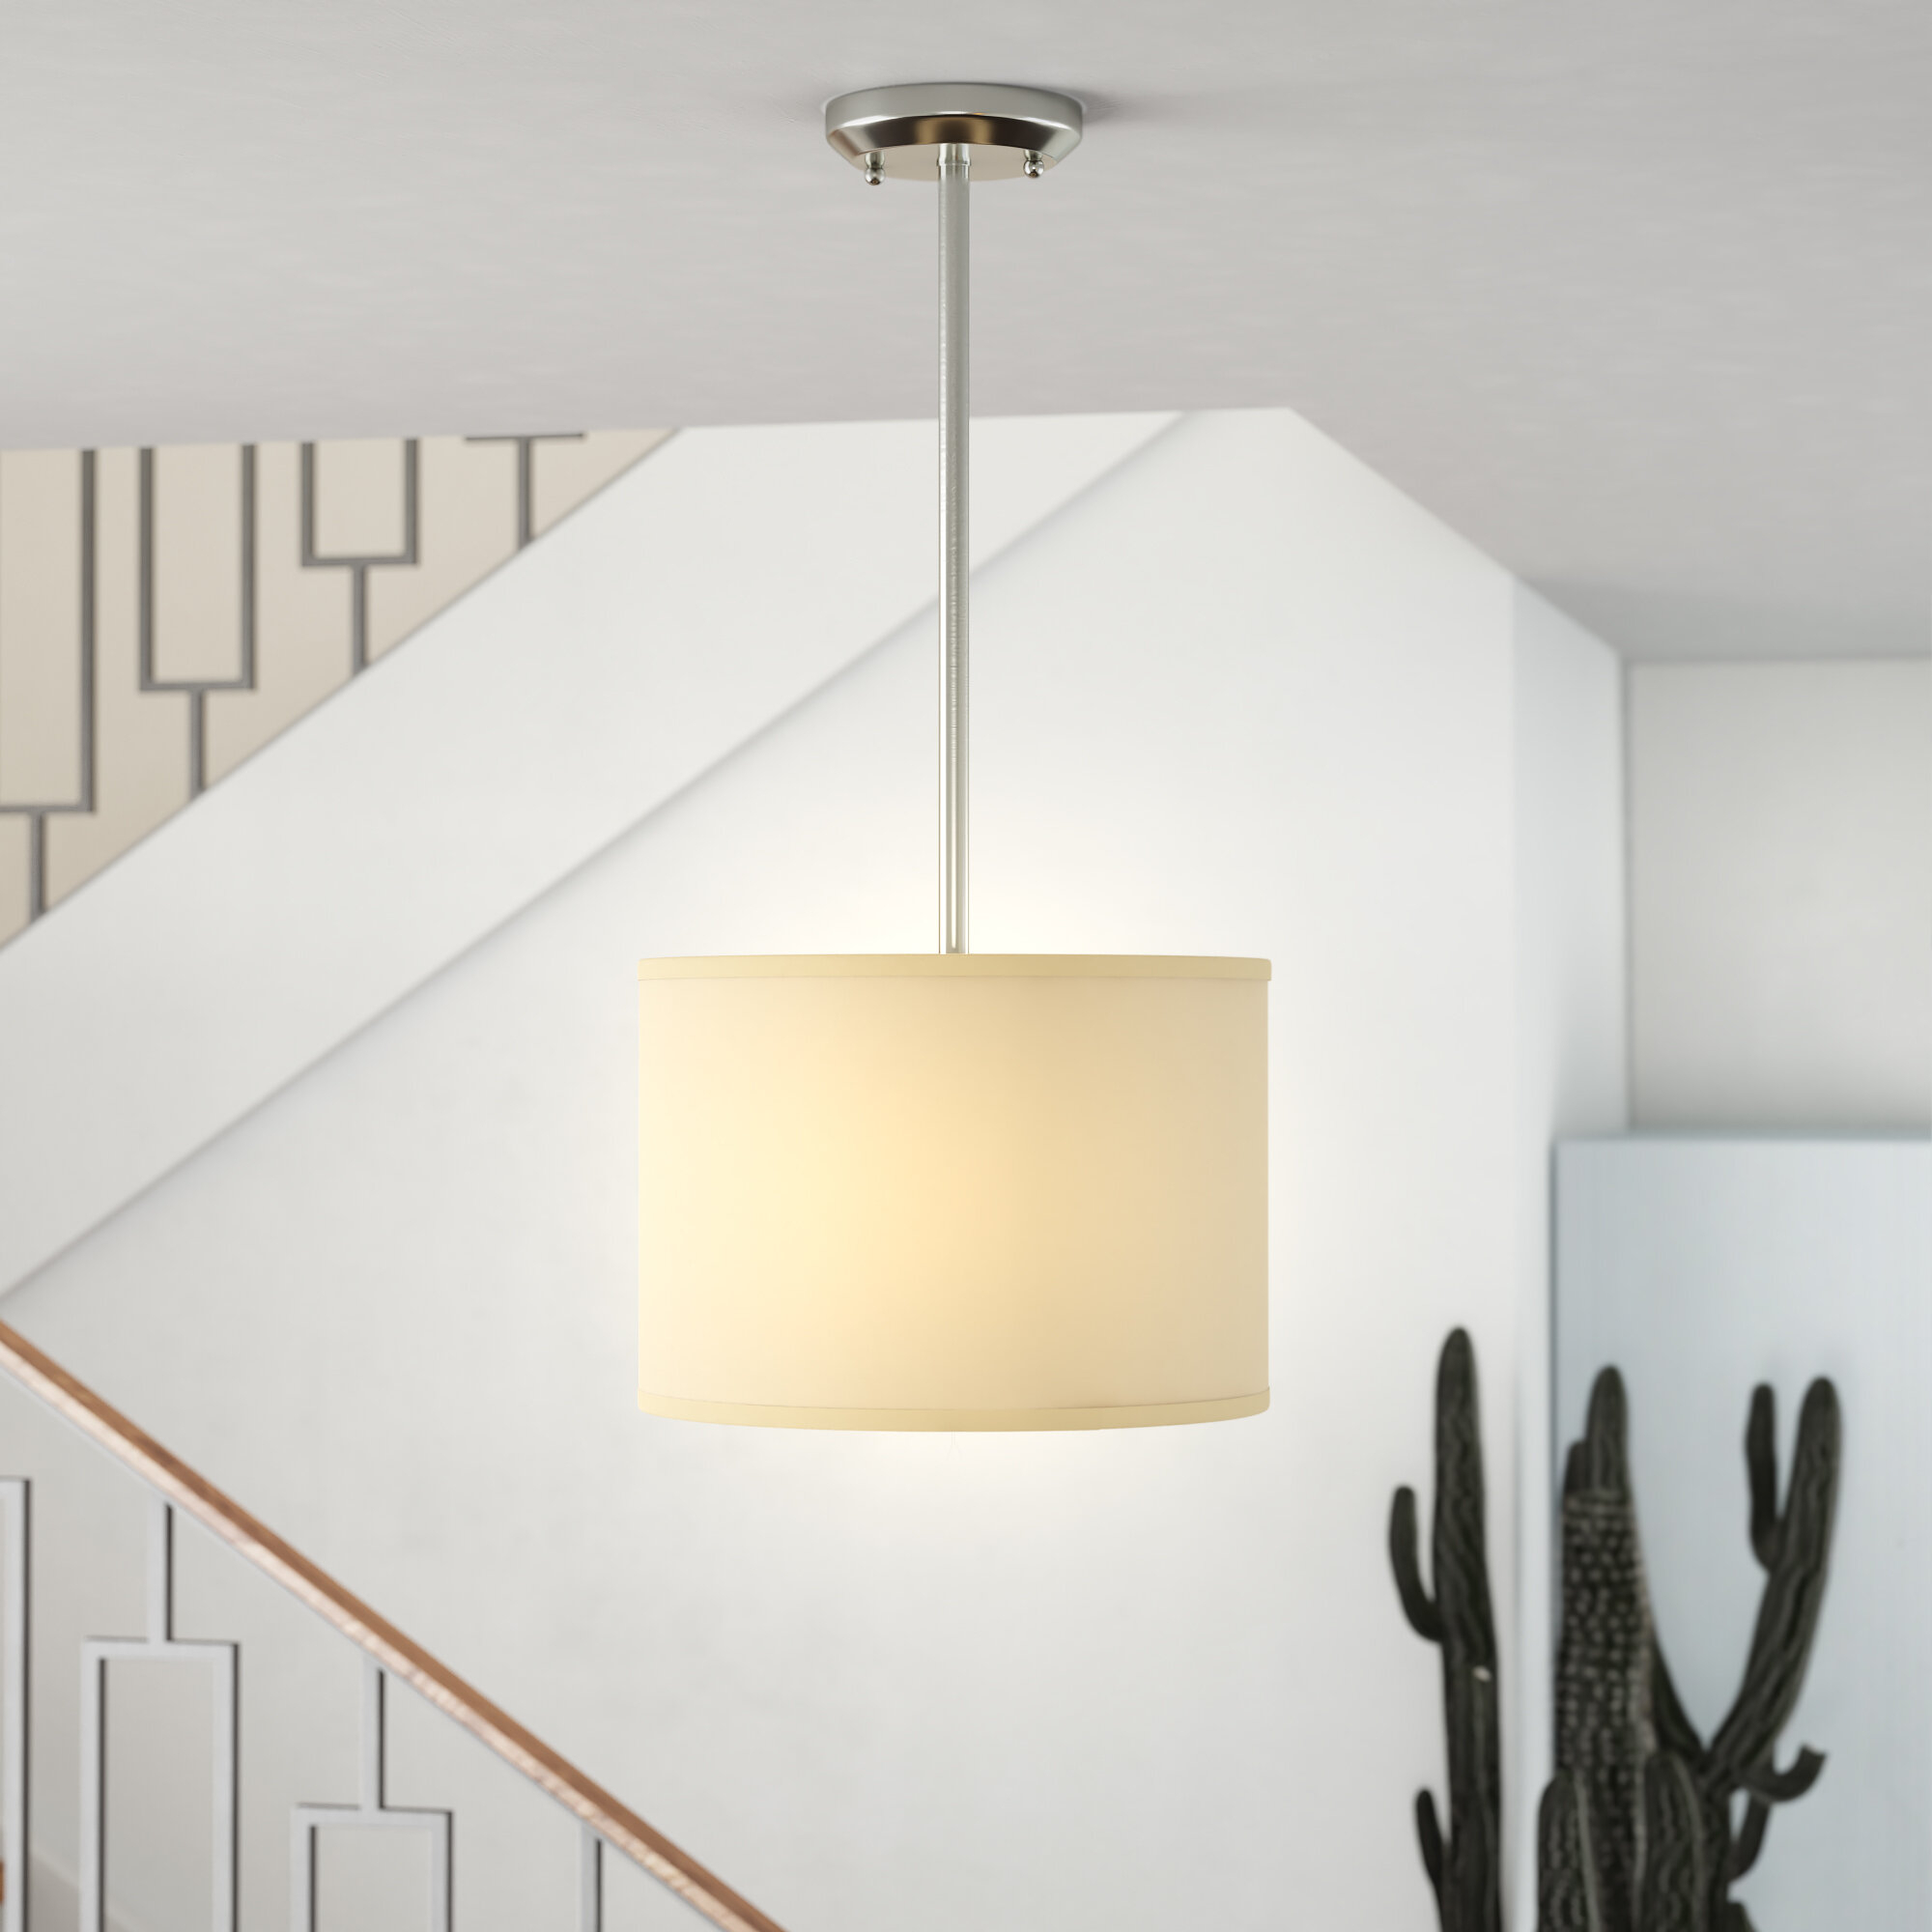 Kasey 1 Light Single Drum Pendant With Regard To Kasey 3 Light Single Drum Pendants (Photo 9 of 30)